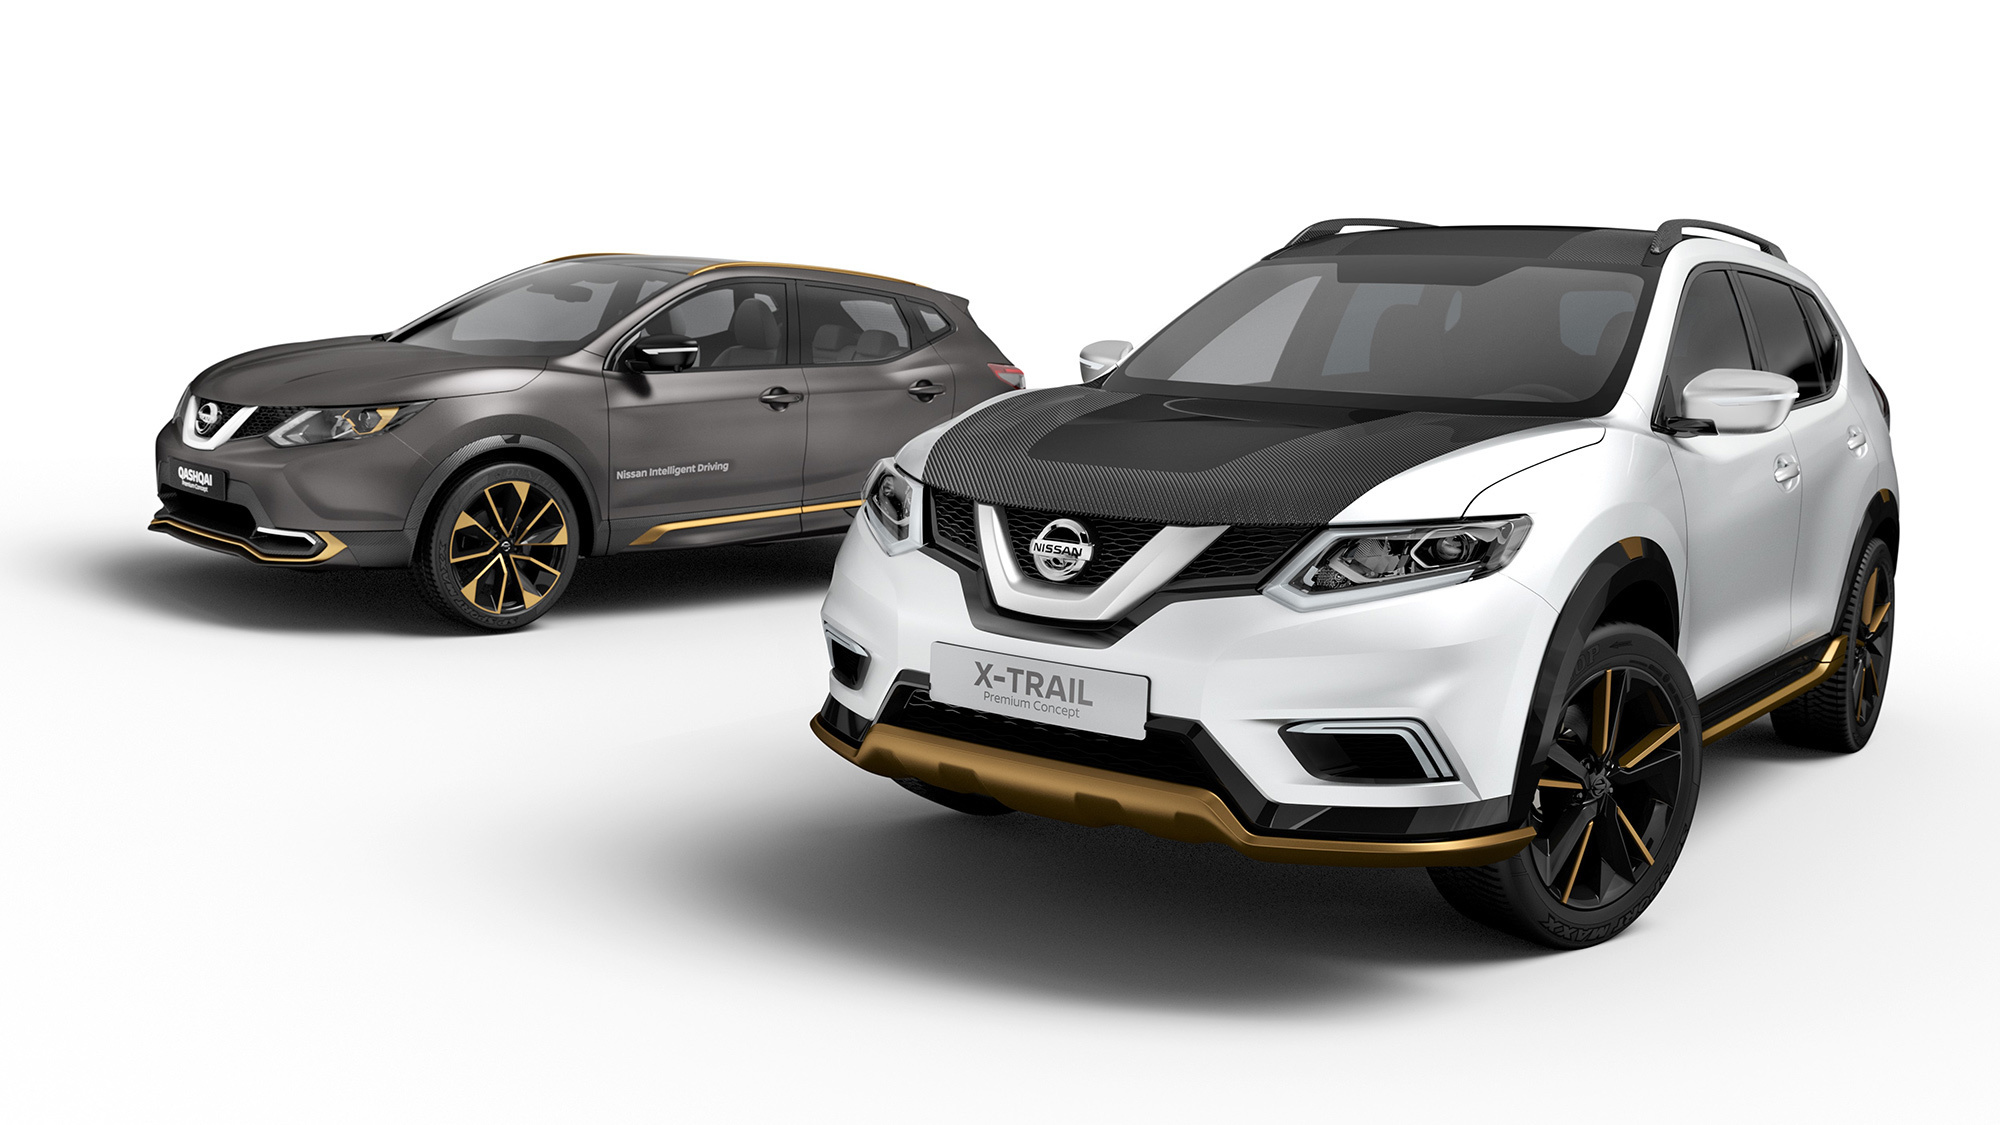 Nissan Qashqai 2017 Wallpapers Images Photos Pictures Backgrounds